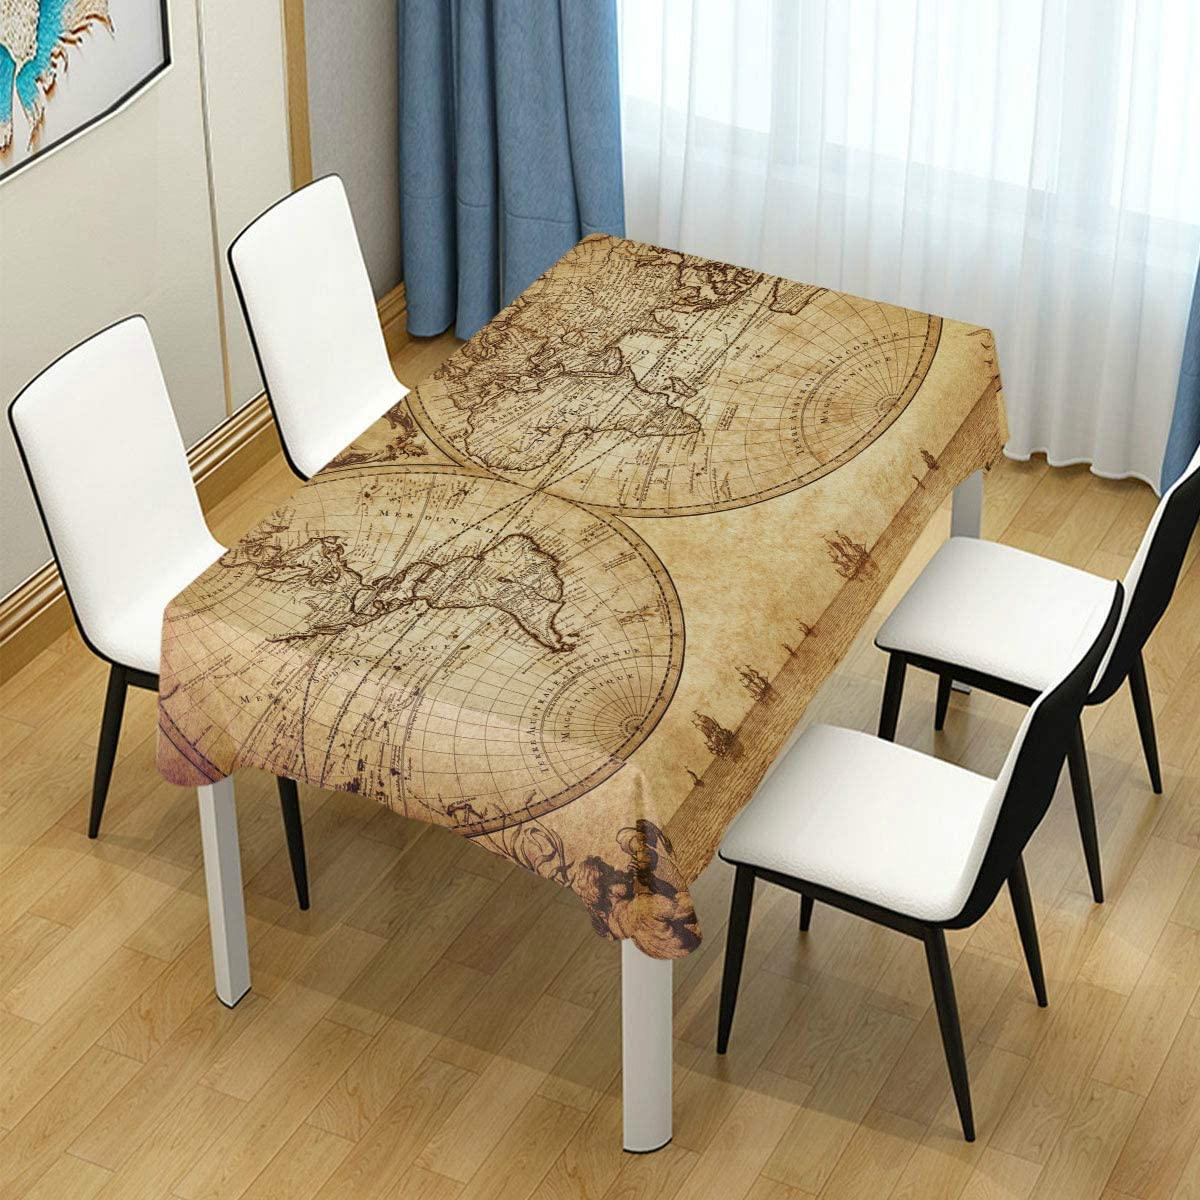 Amazon Com Helvoon Retro Old World Map Rectangle Tablecloth Wedding Party Dining Room Picnic Kitchen Washable Table Cover 60 W X 108 L Inches Home Kitchen